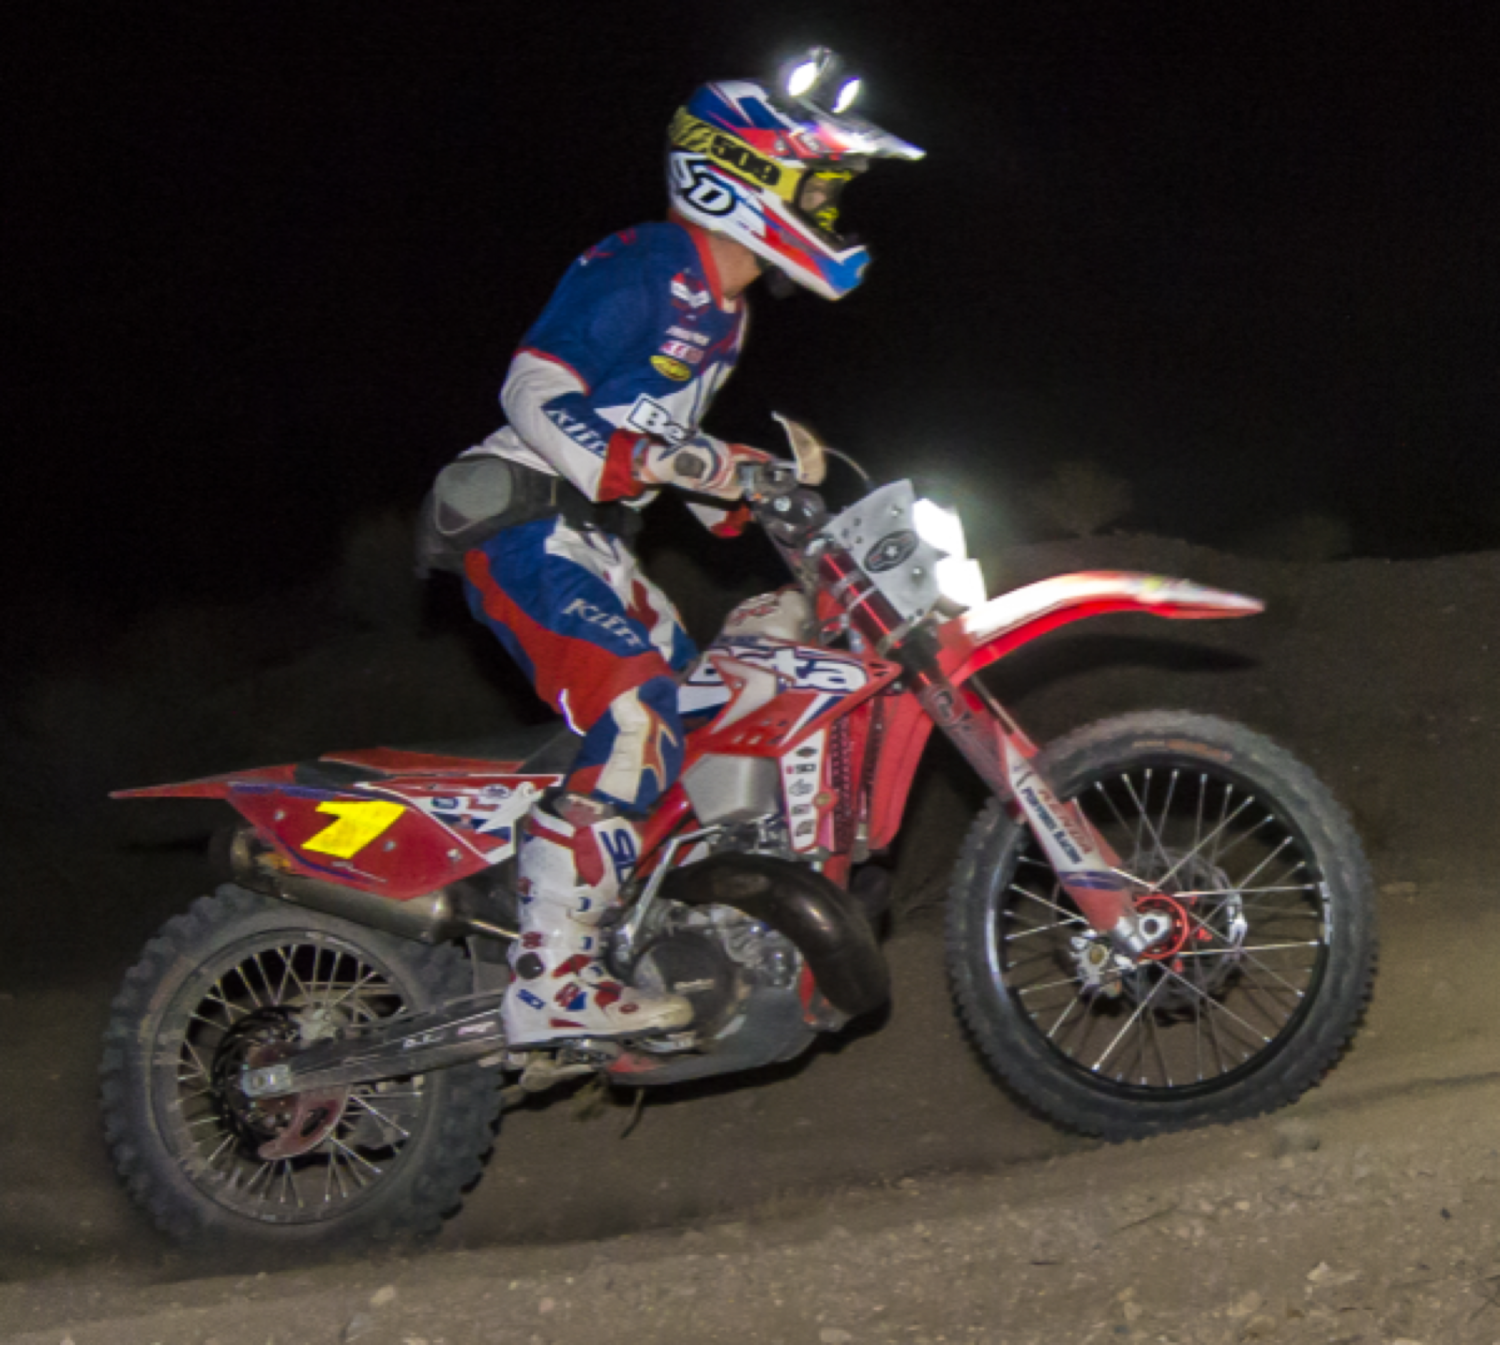 Task racing check out our task racing helmet lights and light bars in action aloadofball Image collections